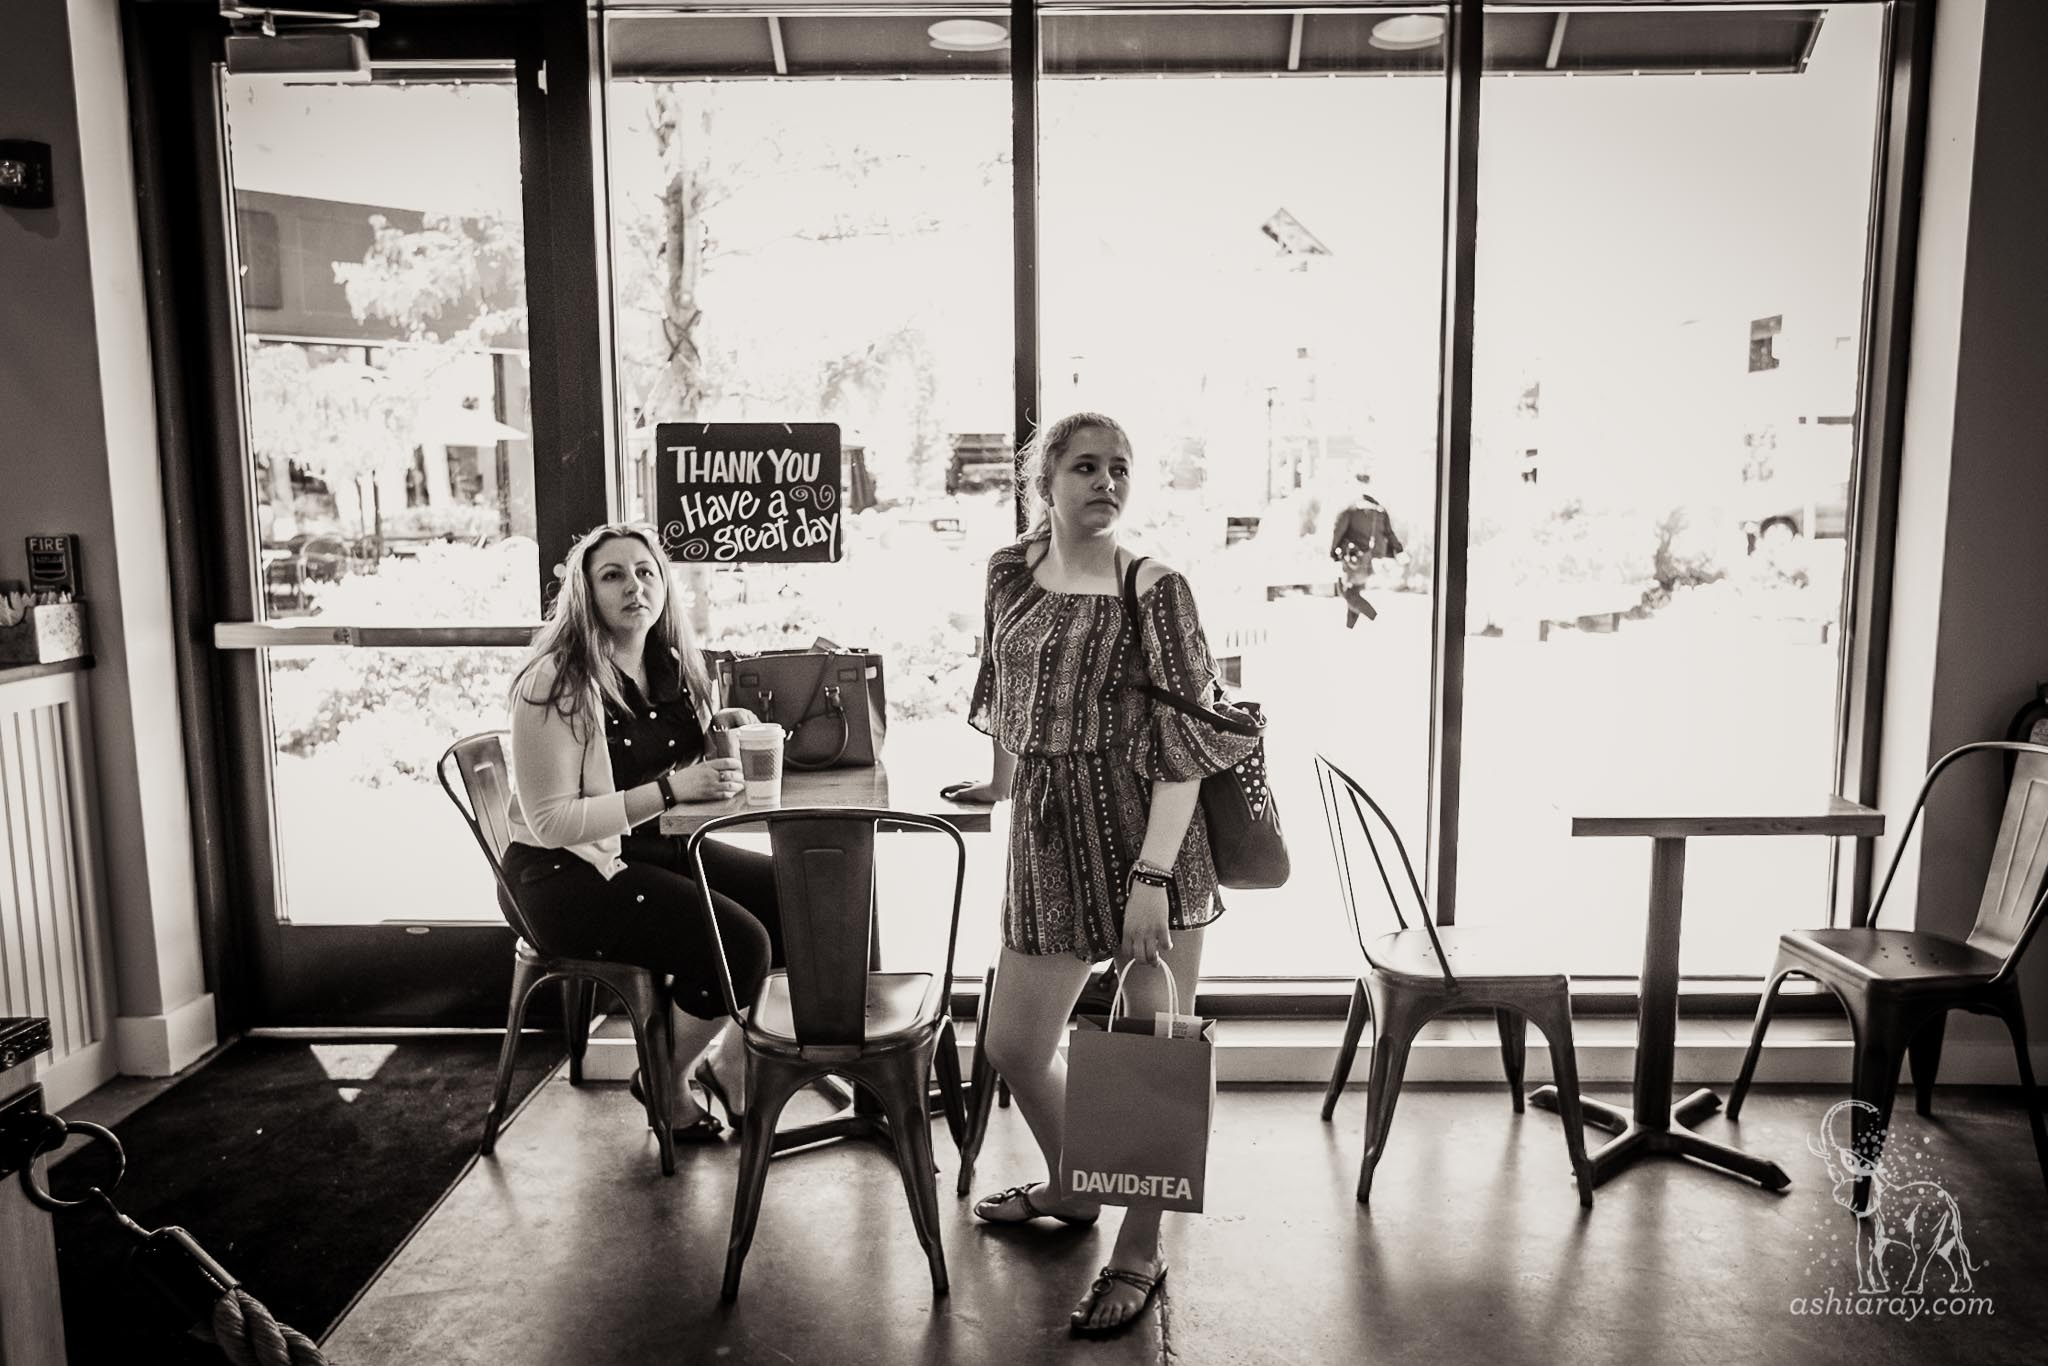 Mother and daughter in restaurant with shopping bags